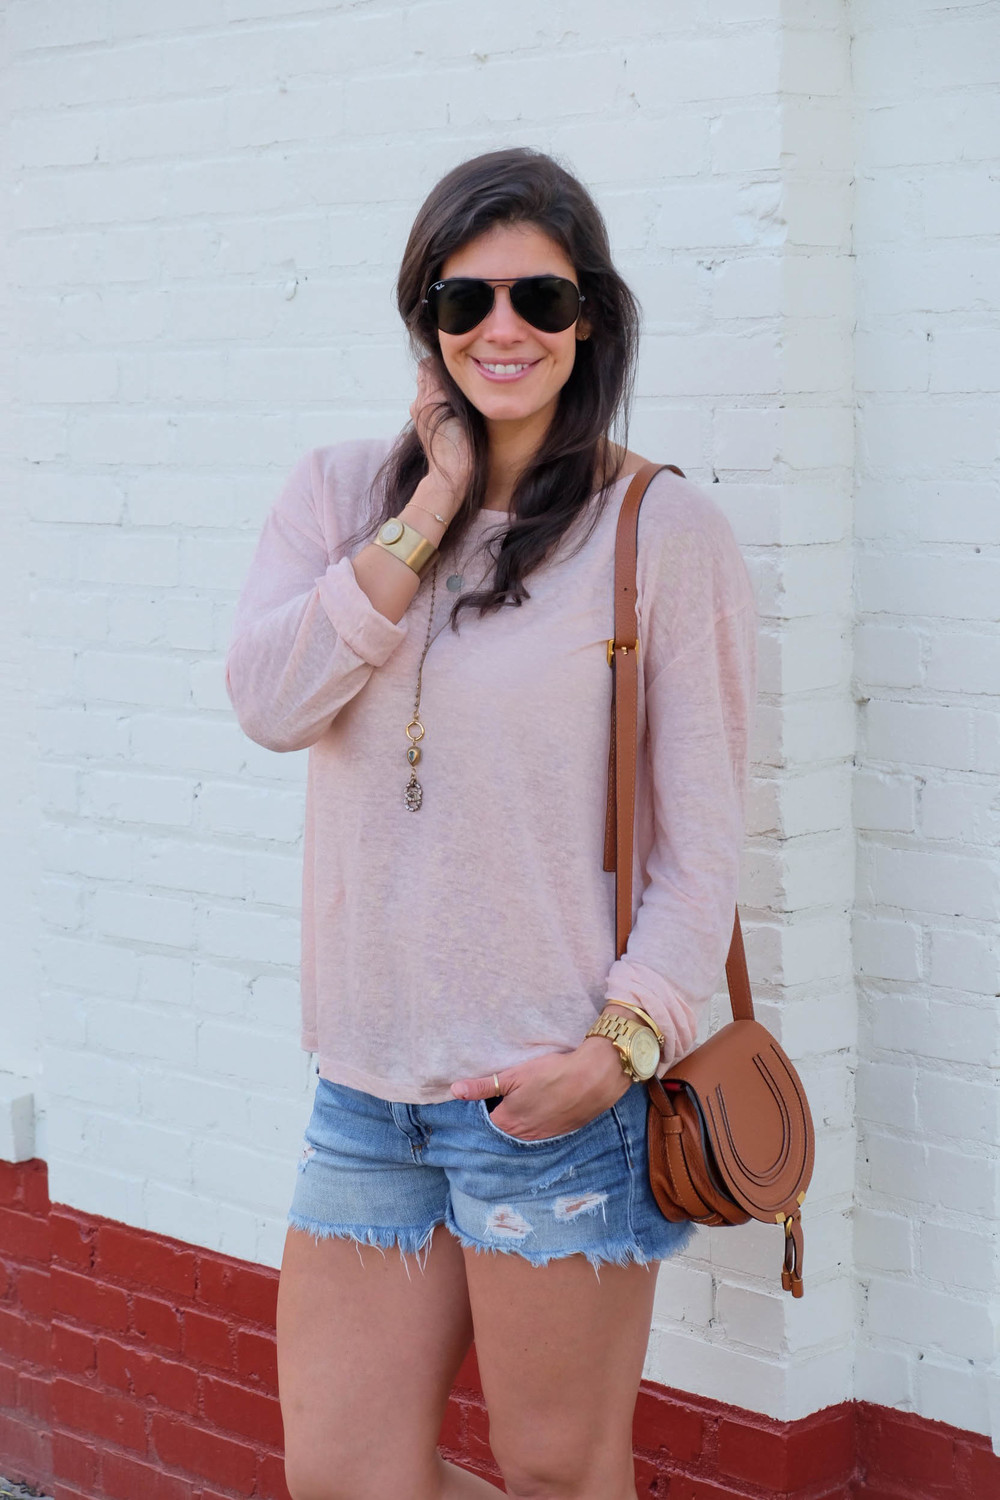 blush-summer-sweater-denim-cutoffs-laurenschwaiger-style-blog.jpg